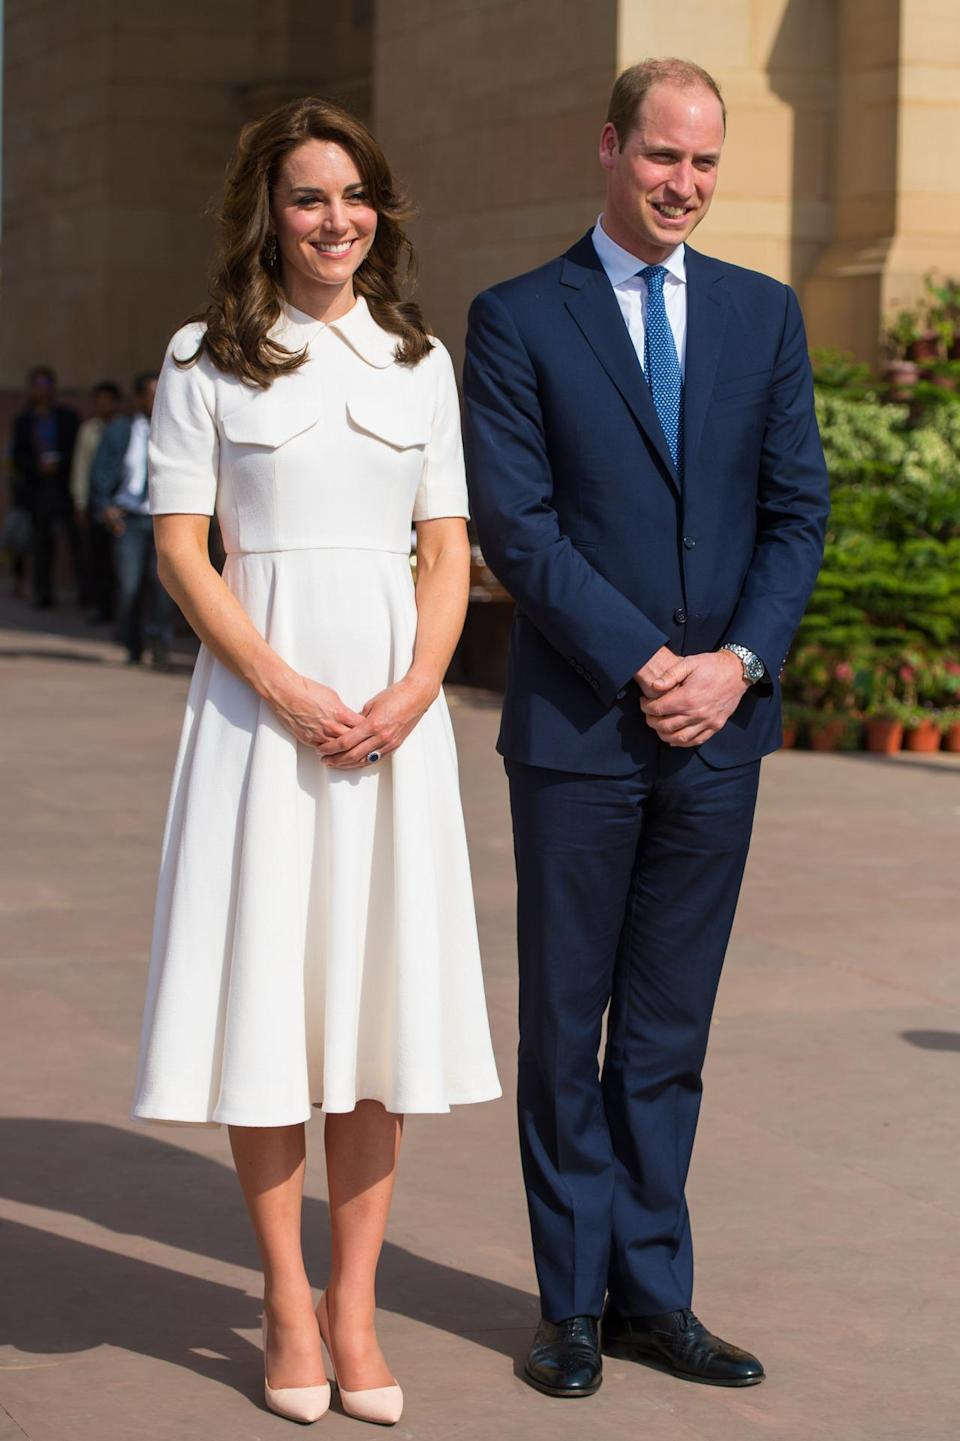 <p>While visiting a war memorial in India, Kate wore an elegant ensemble from Emilia Wickstead along with neutral Rupert Sanderson heels. </p><p><i>[Photo: PA]</i></p>